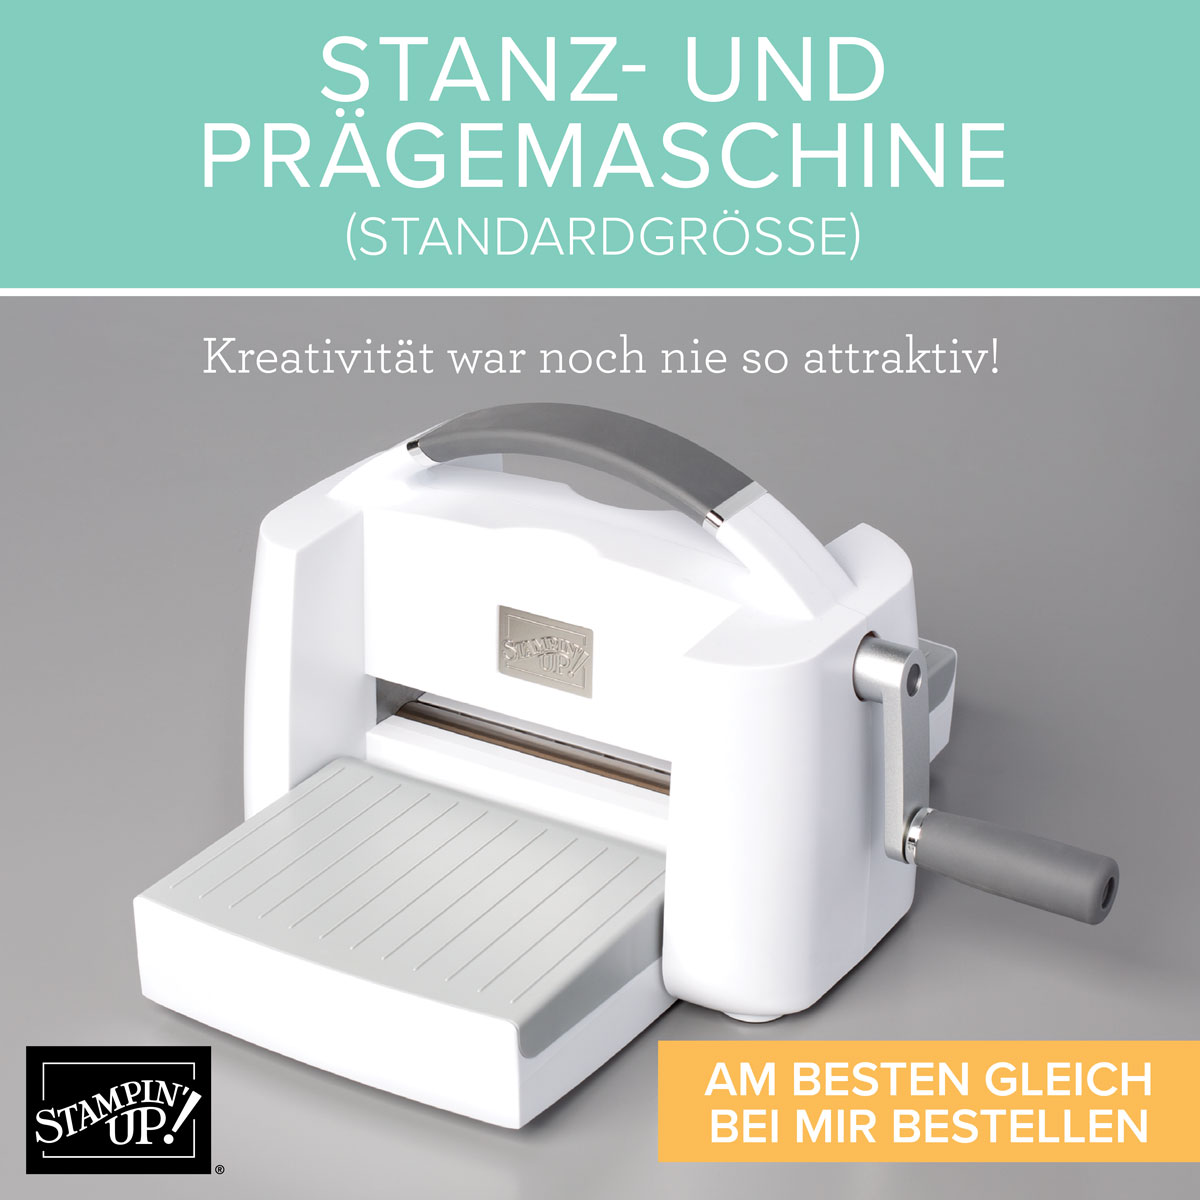 https://su-media.s3.amazonaws.com/media/Promotions/2020/Stampin%27%20Cut%20%26%20Emboss%20Line/08.04.20_SHAREABLE2_CUT%26EMBOSS_MACHINE_PREORDER_DE.jpg